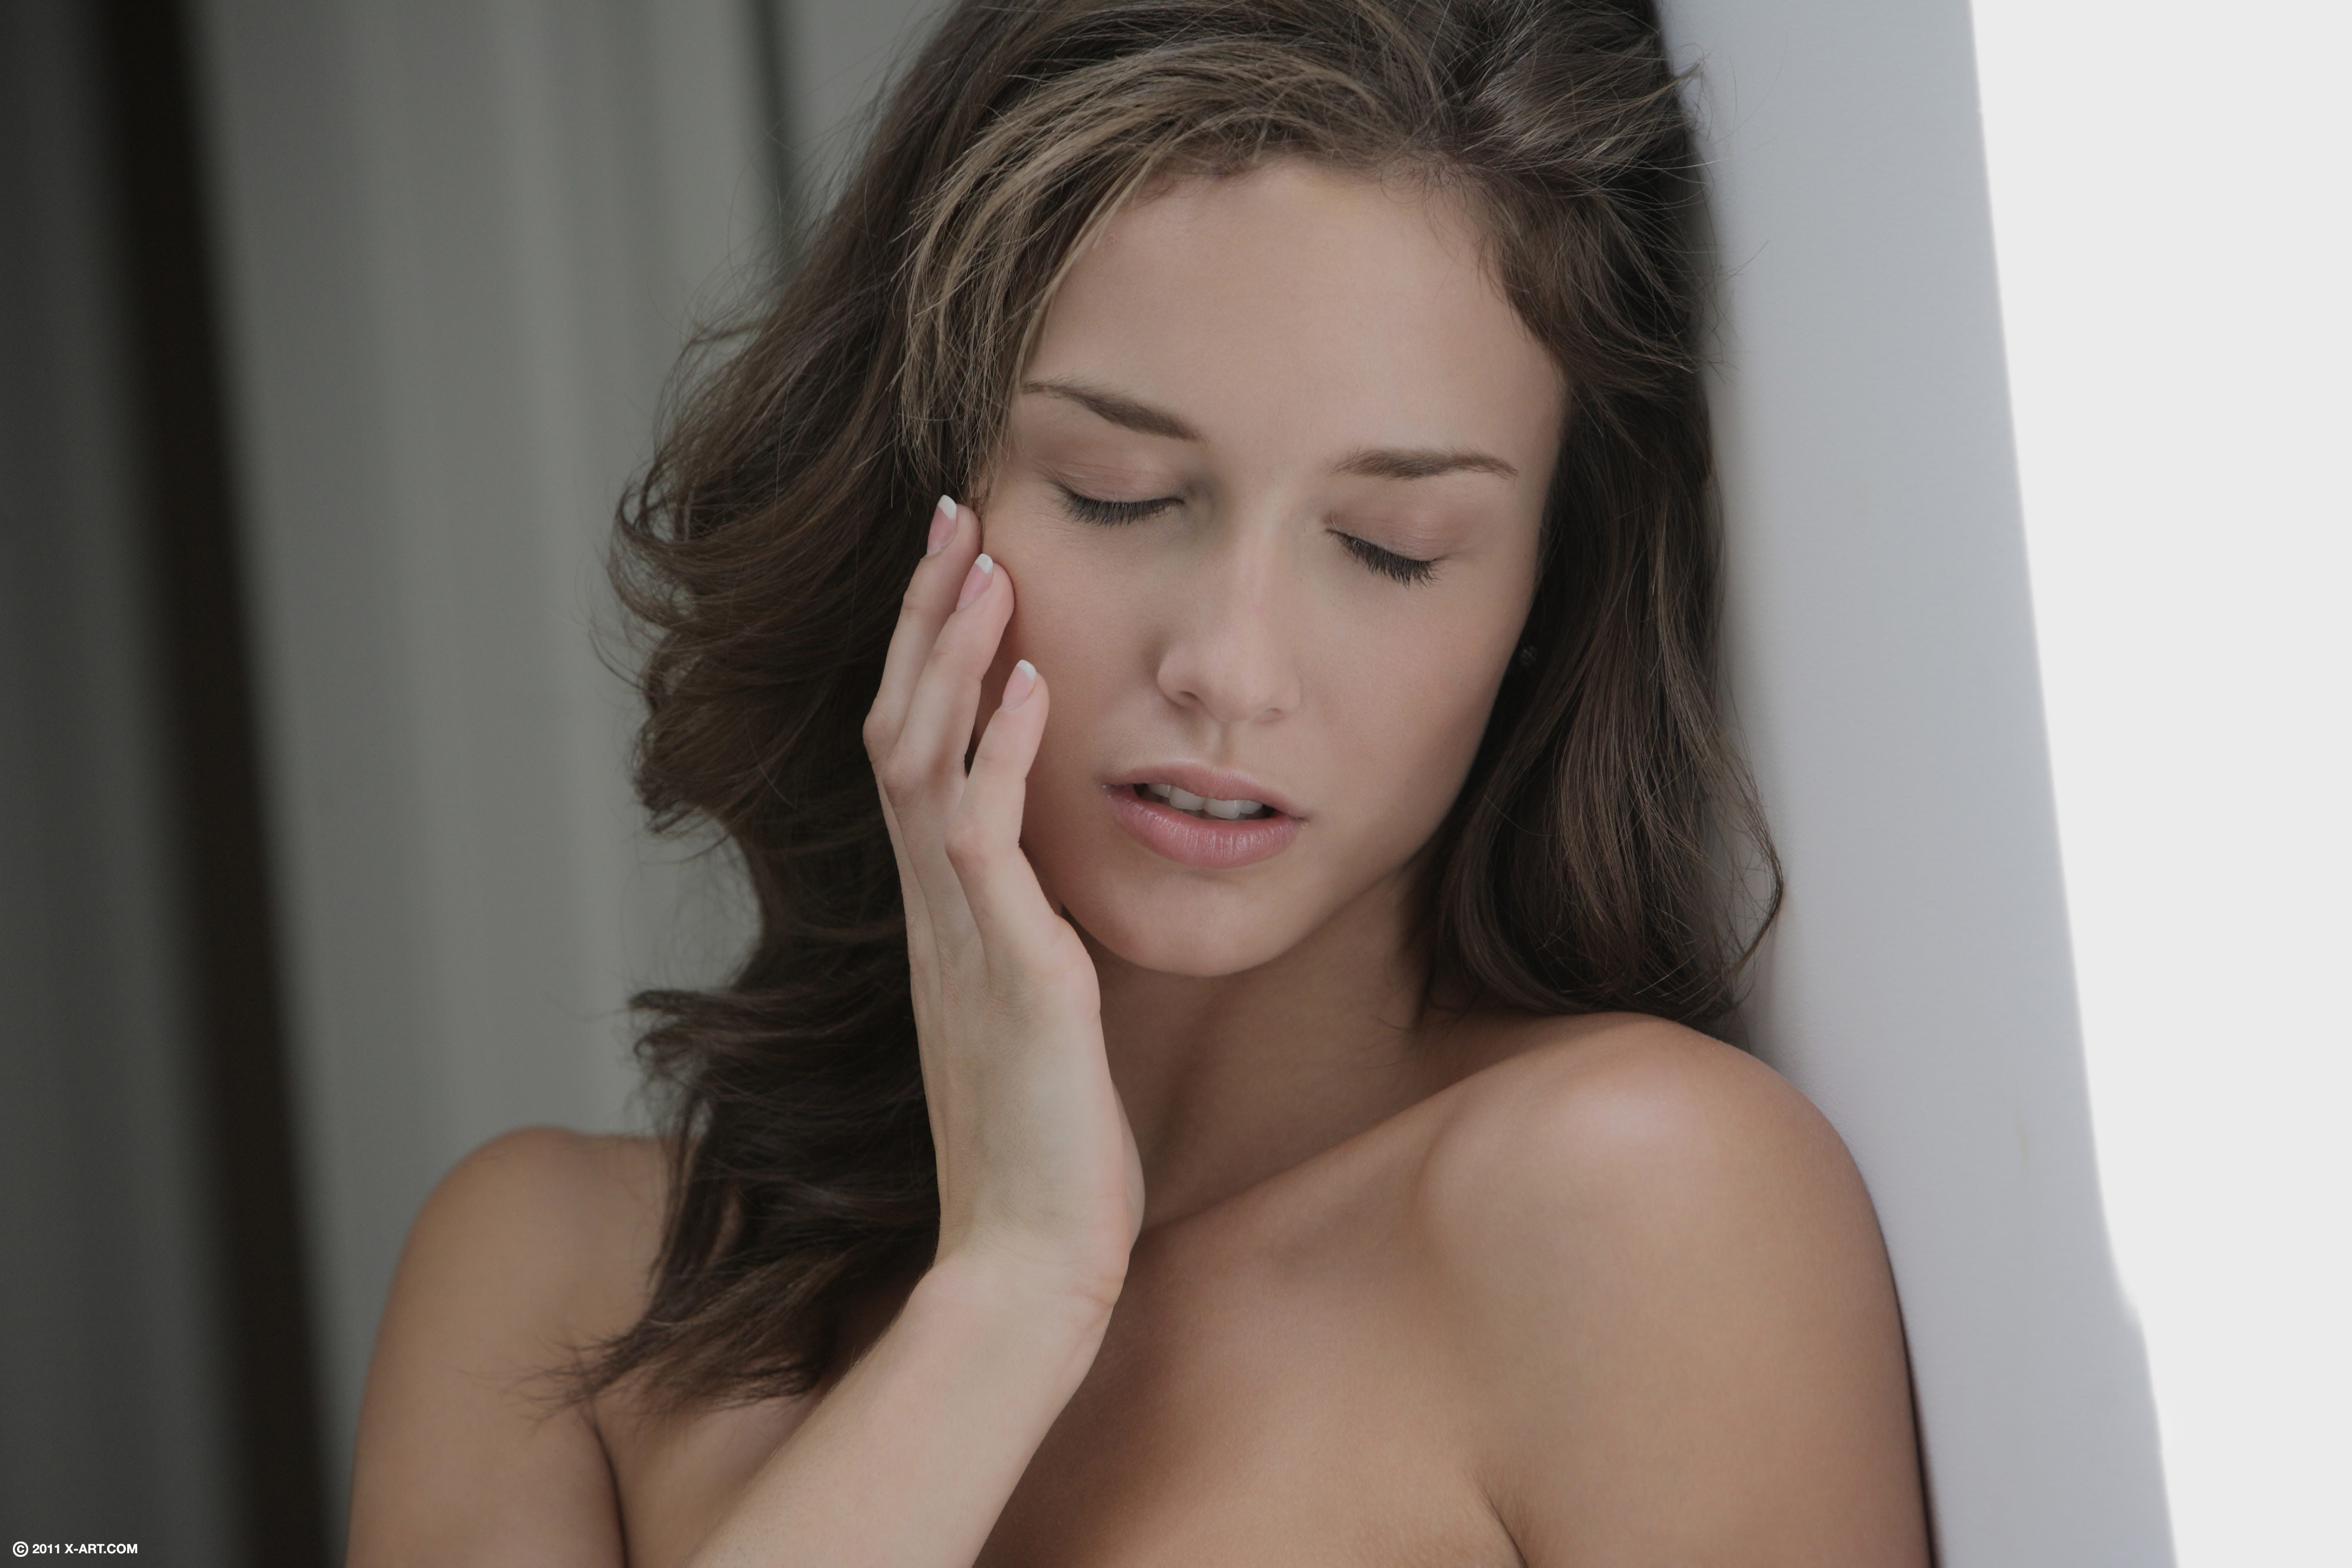 brunettes woman closed eyes